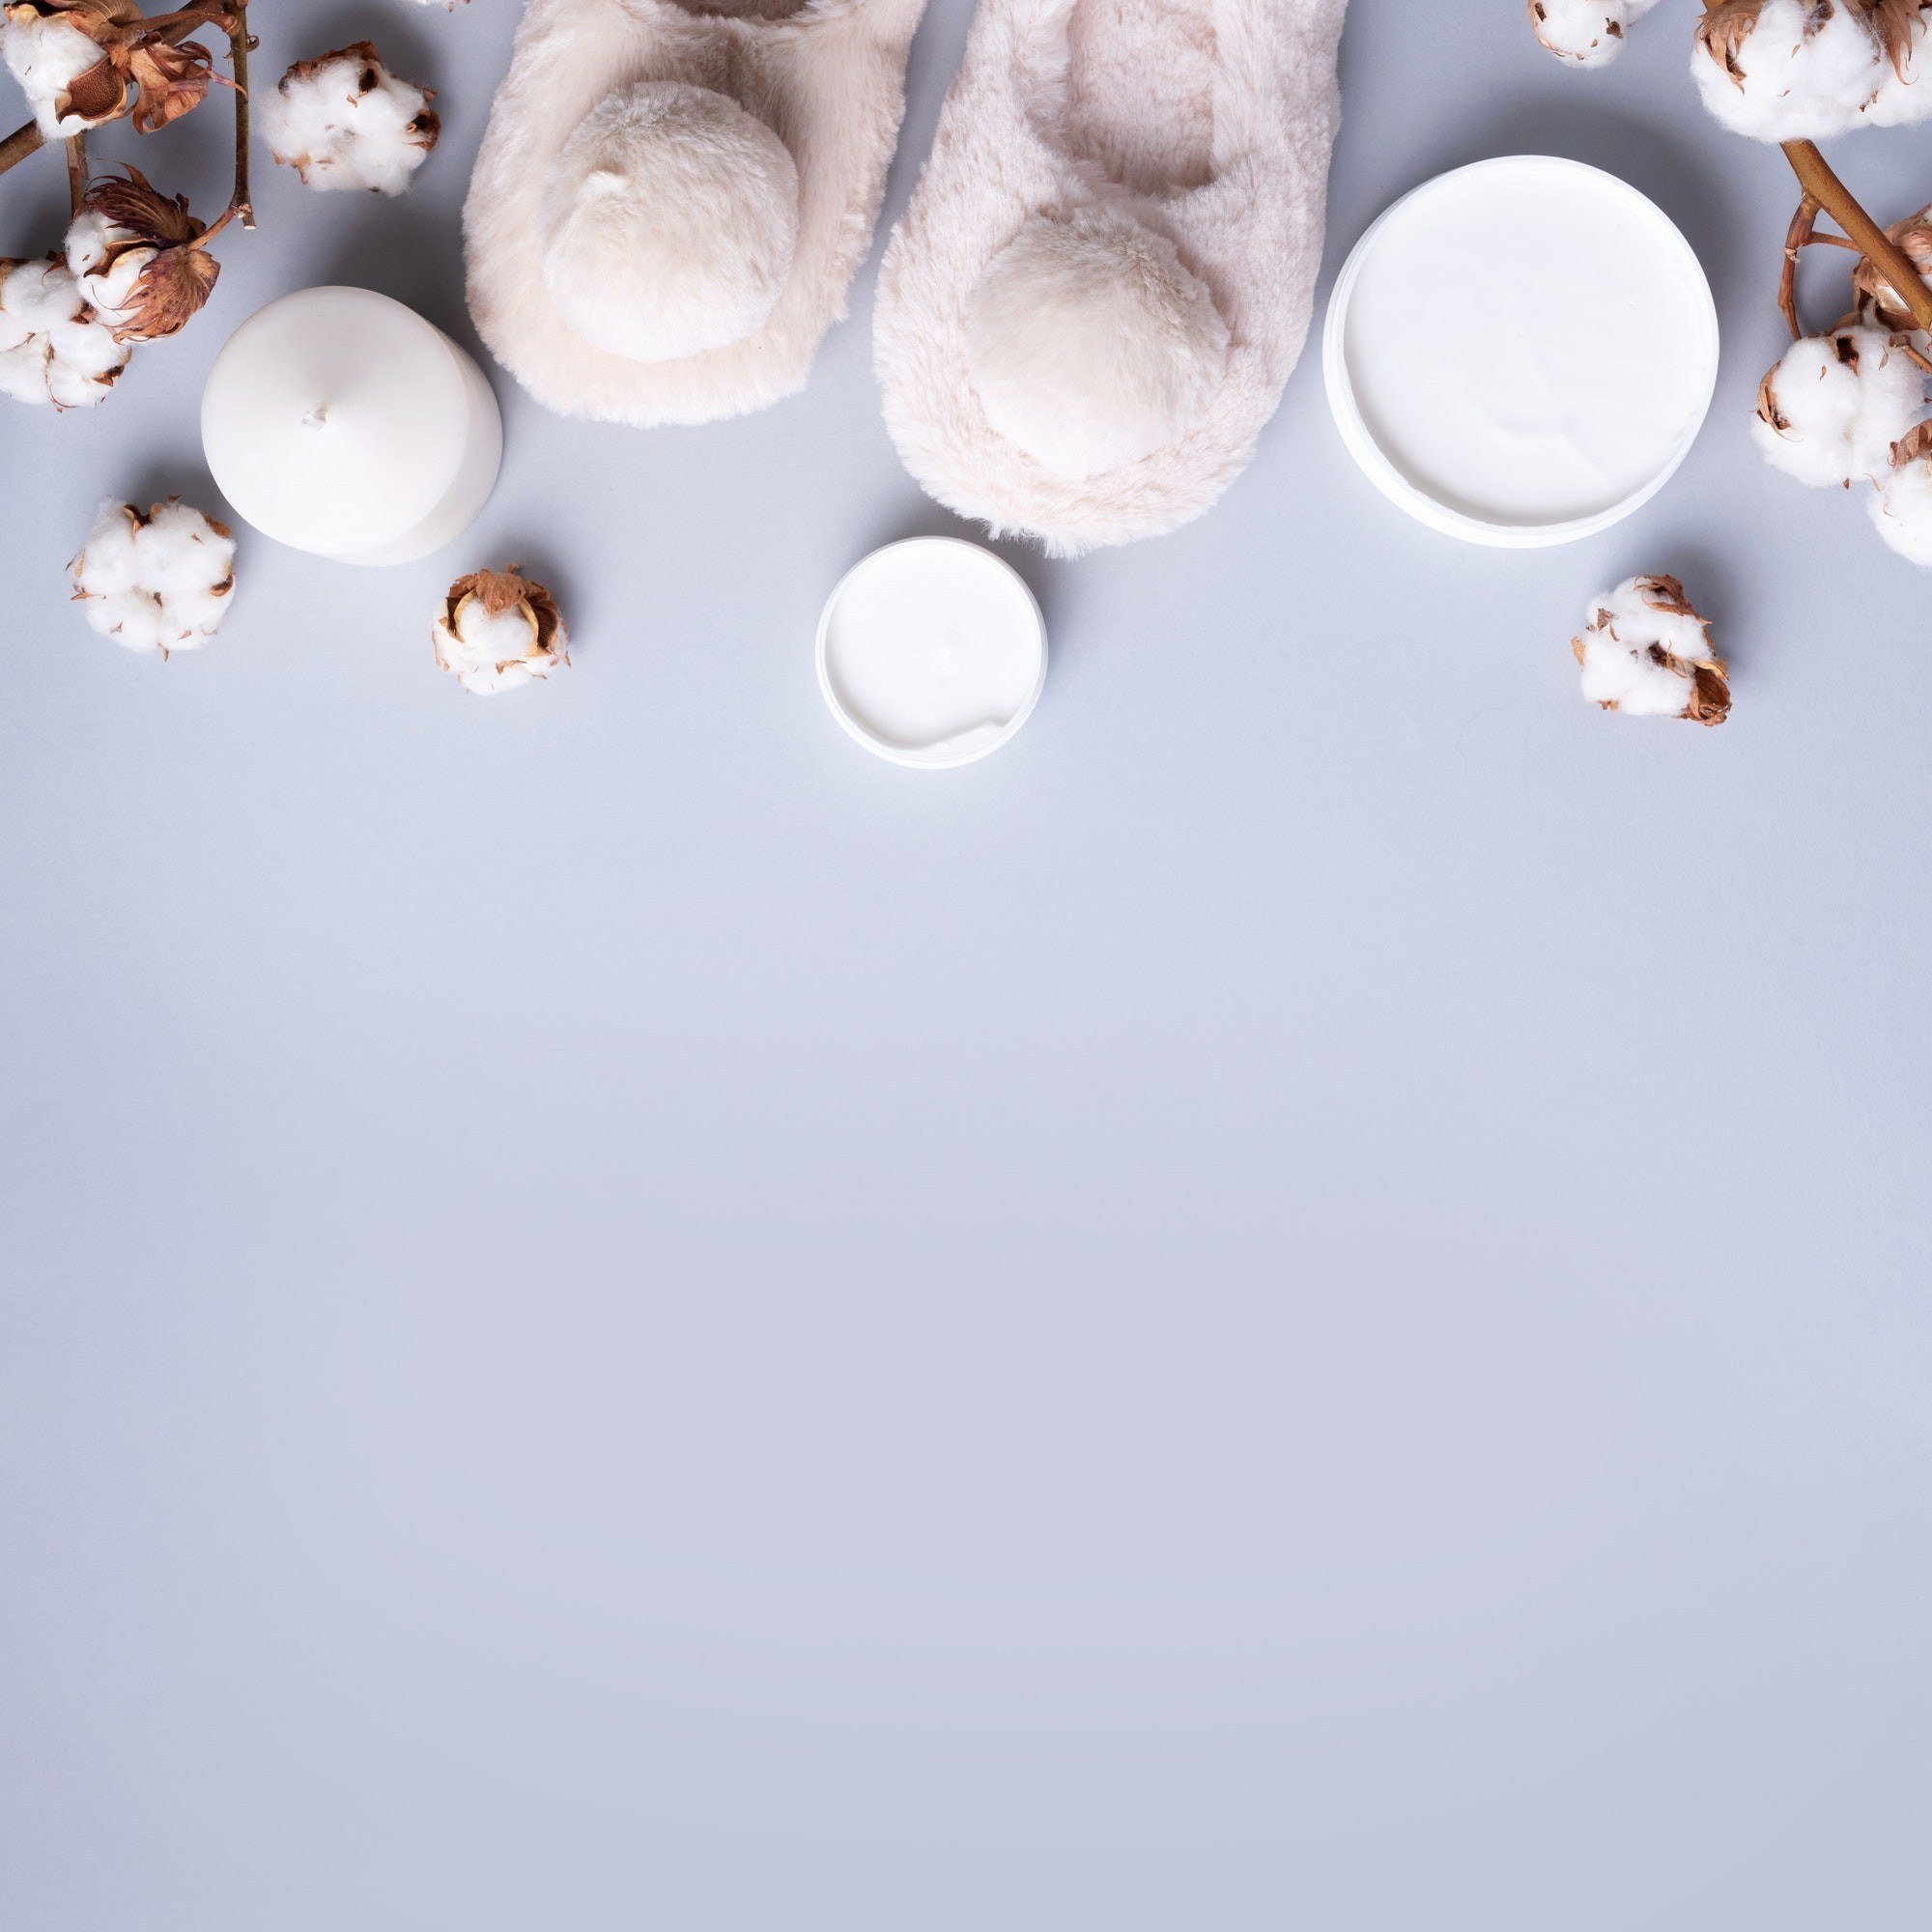 Bathroom accessories, nude fluffy home slippers, cotton flowers, candle, skin care products on grey